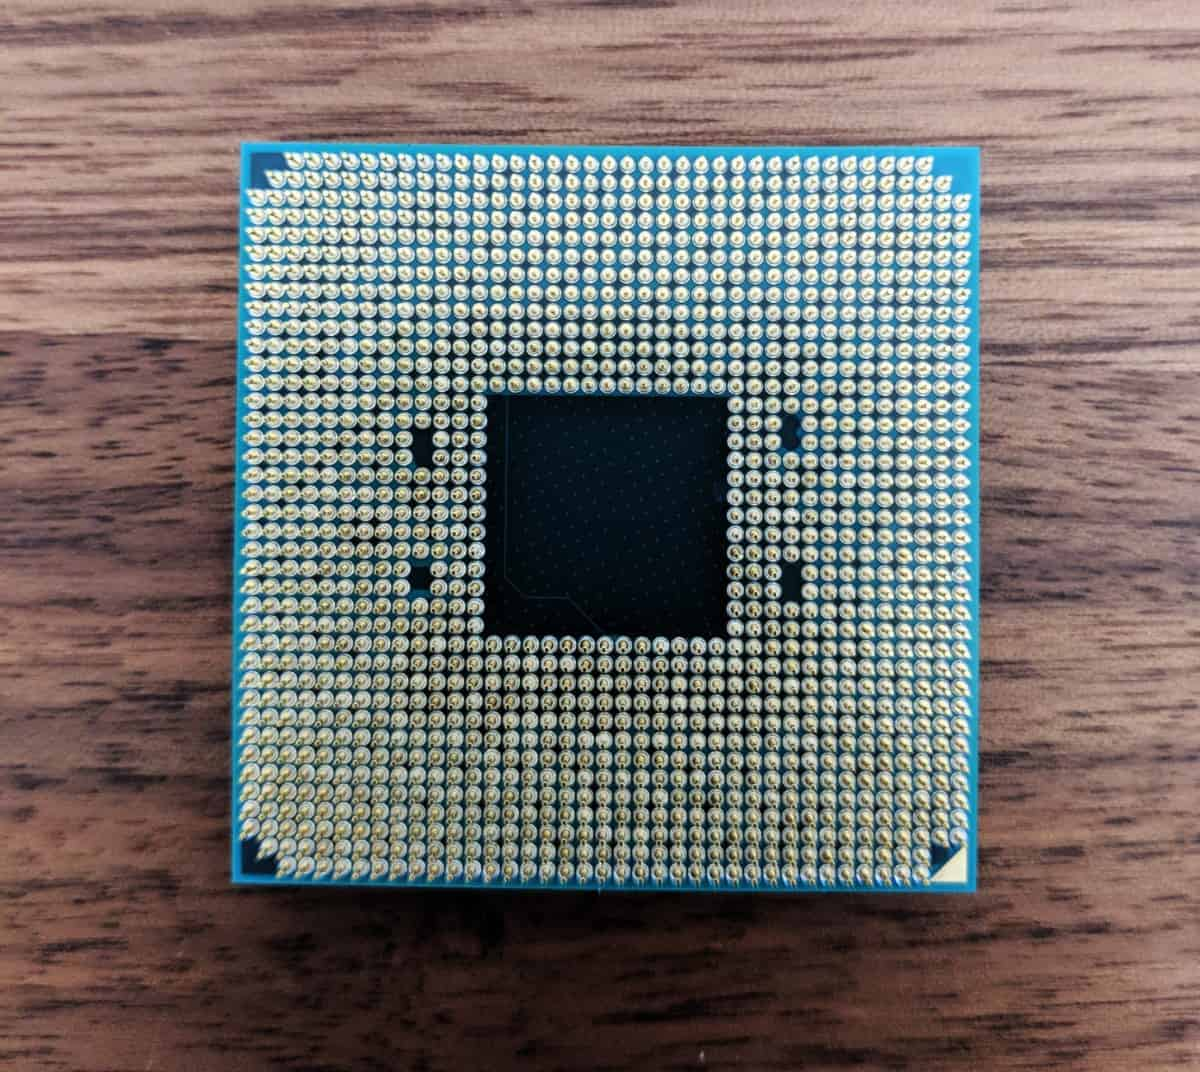 AMD-Ryzen5-1600-Photos-4 AMD Ryzen 5 1600 CPU Review